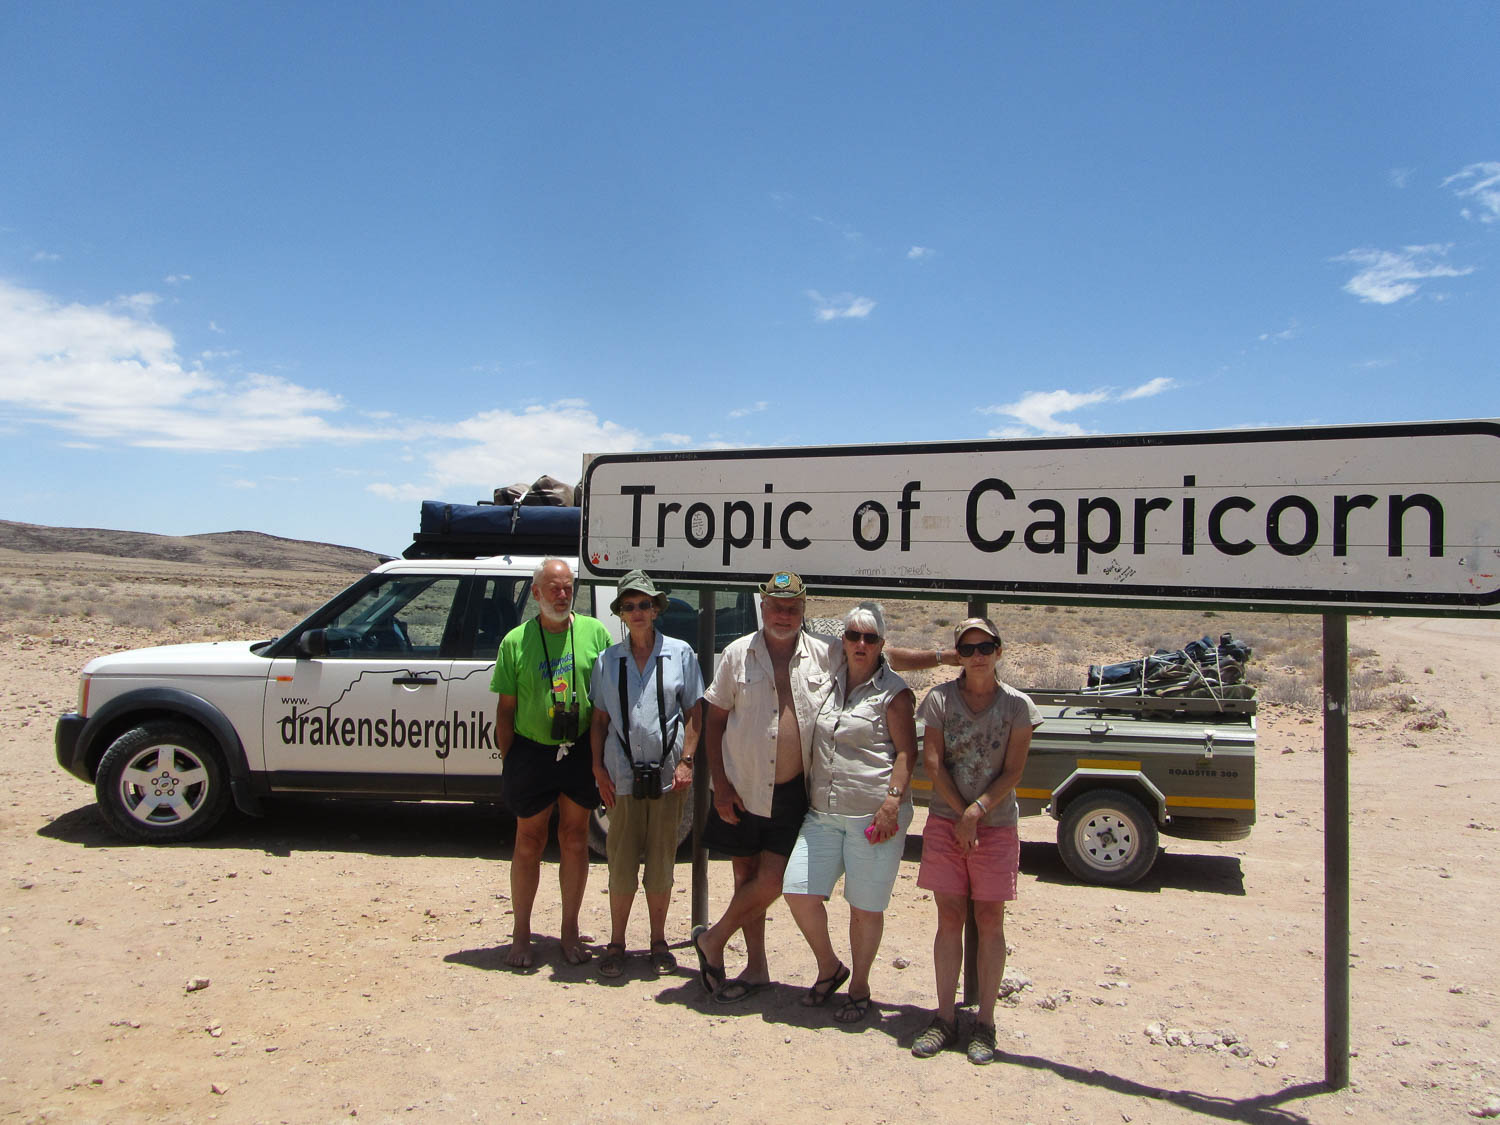 Tropic of Capricorn in the Namibian Desert with South Africa Overland 4x4 Tours